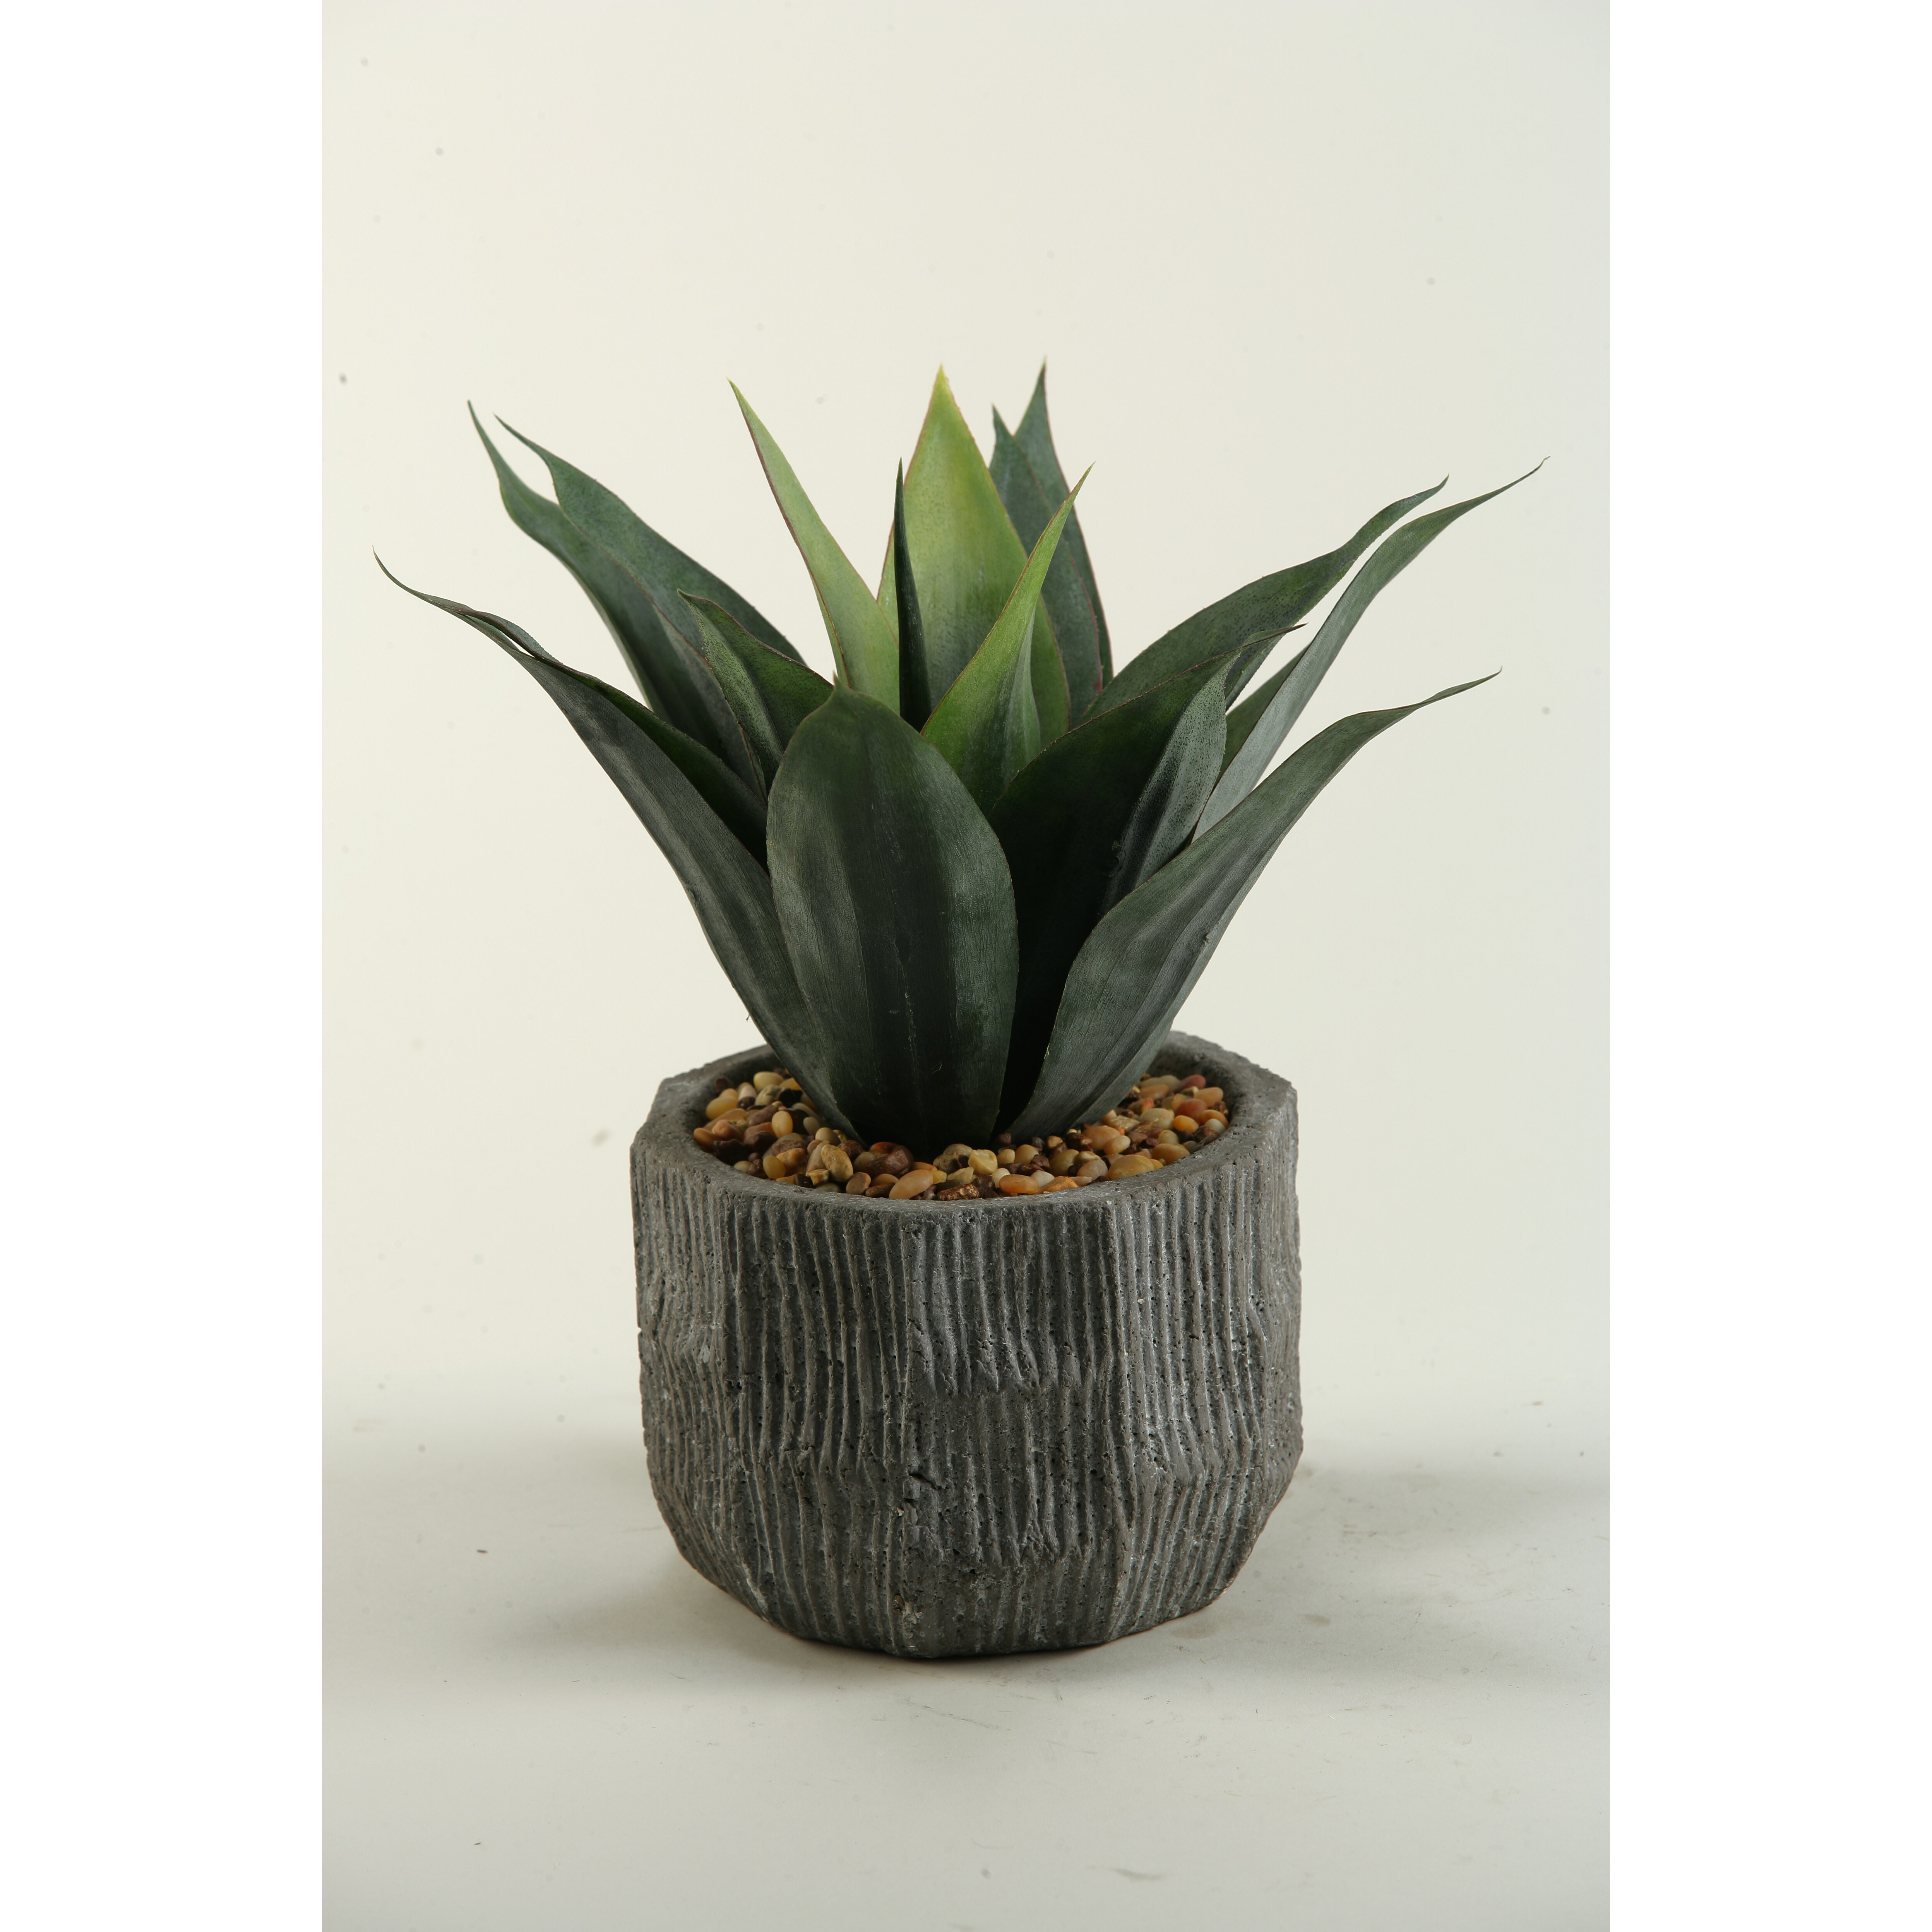 Agave Desk Top Plant in Planter